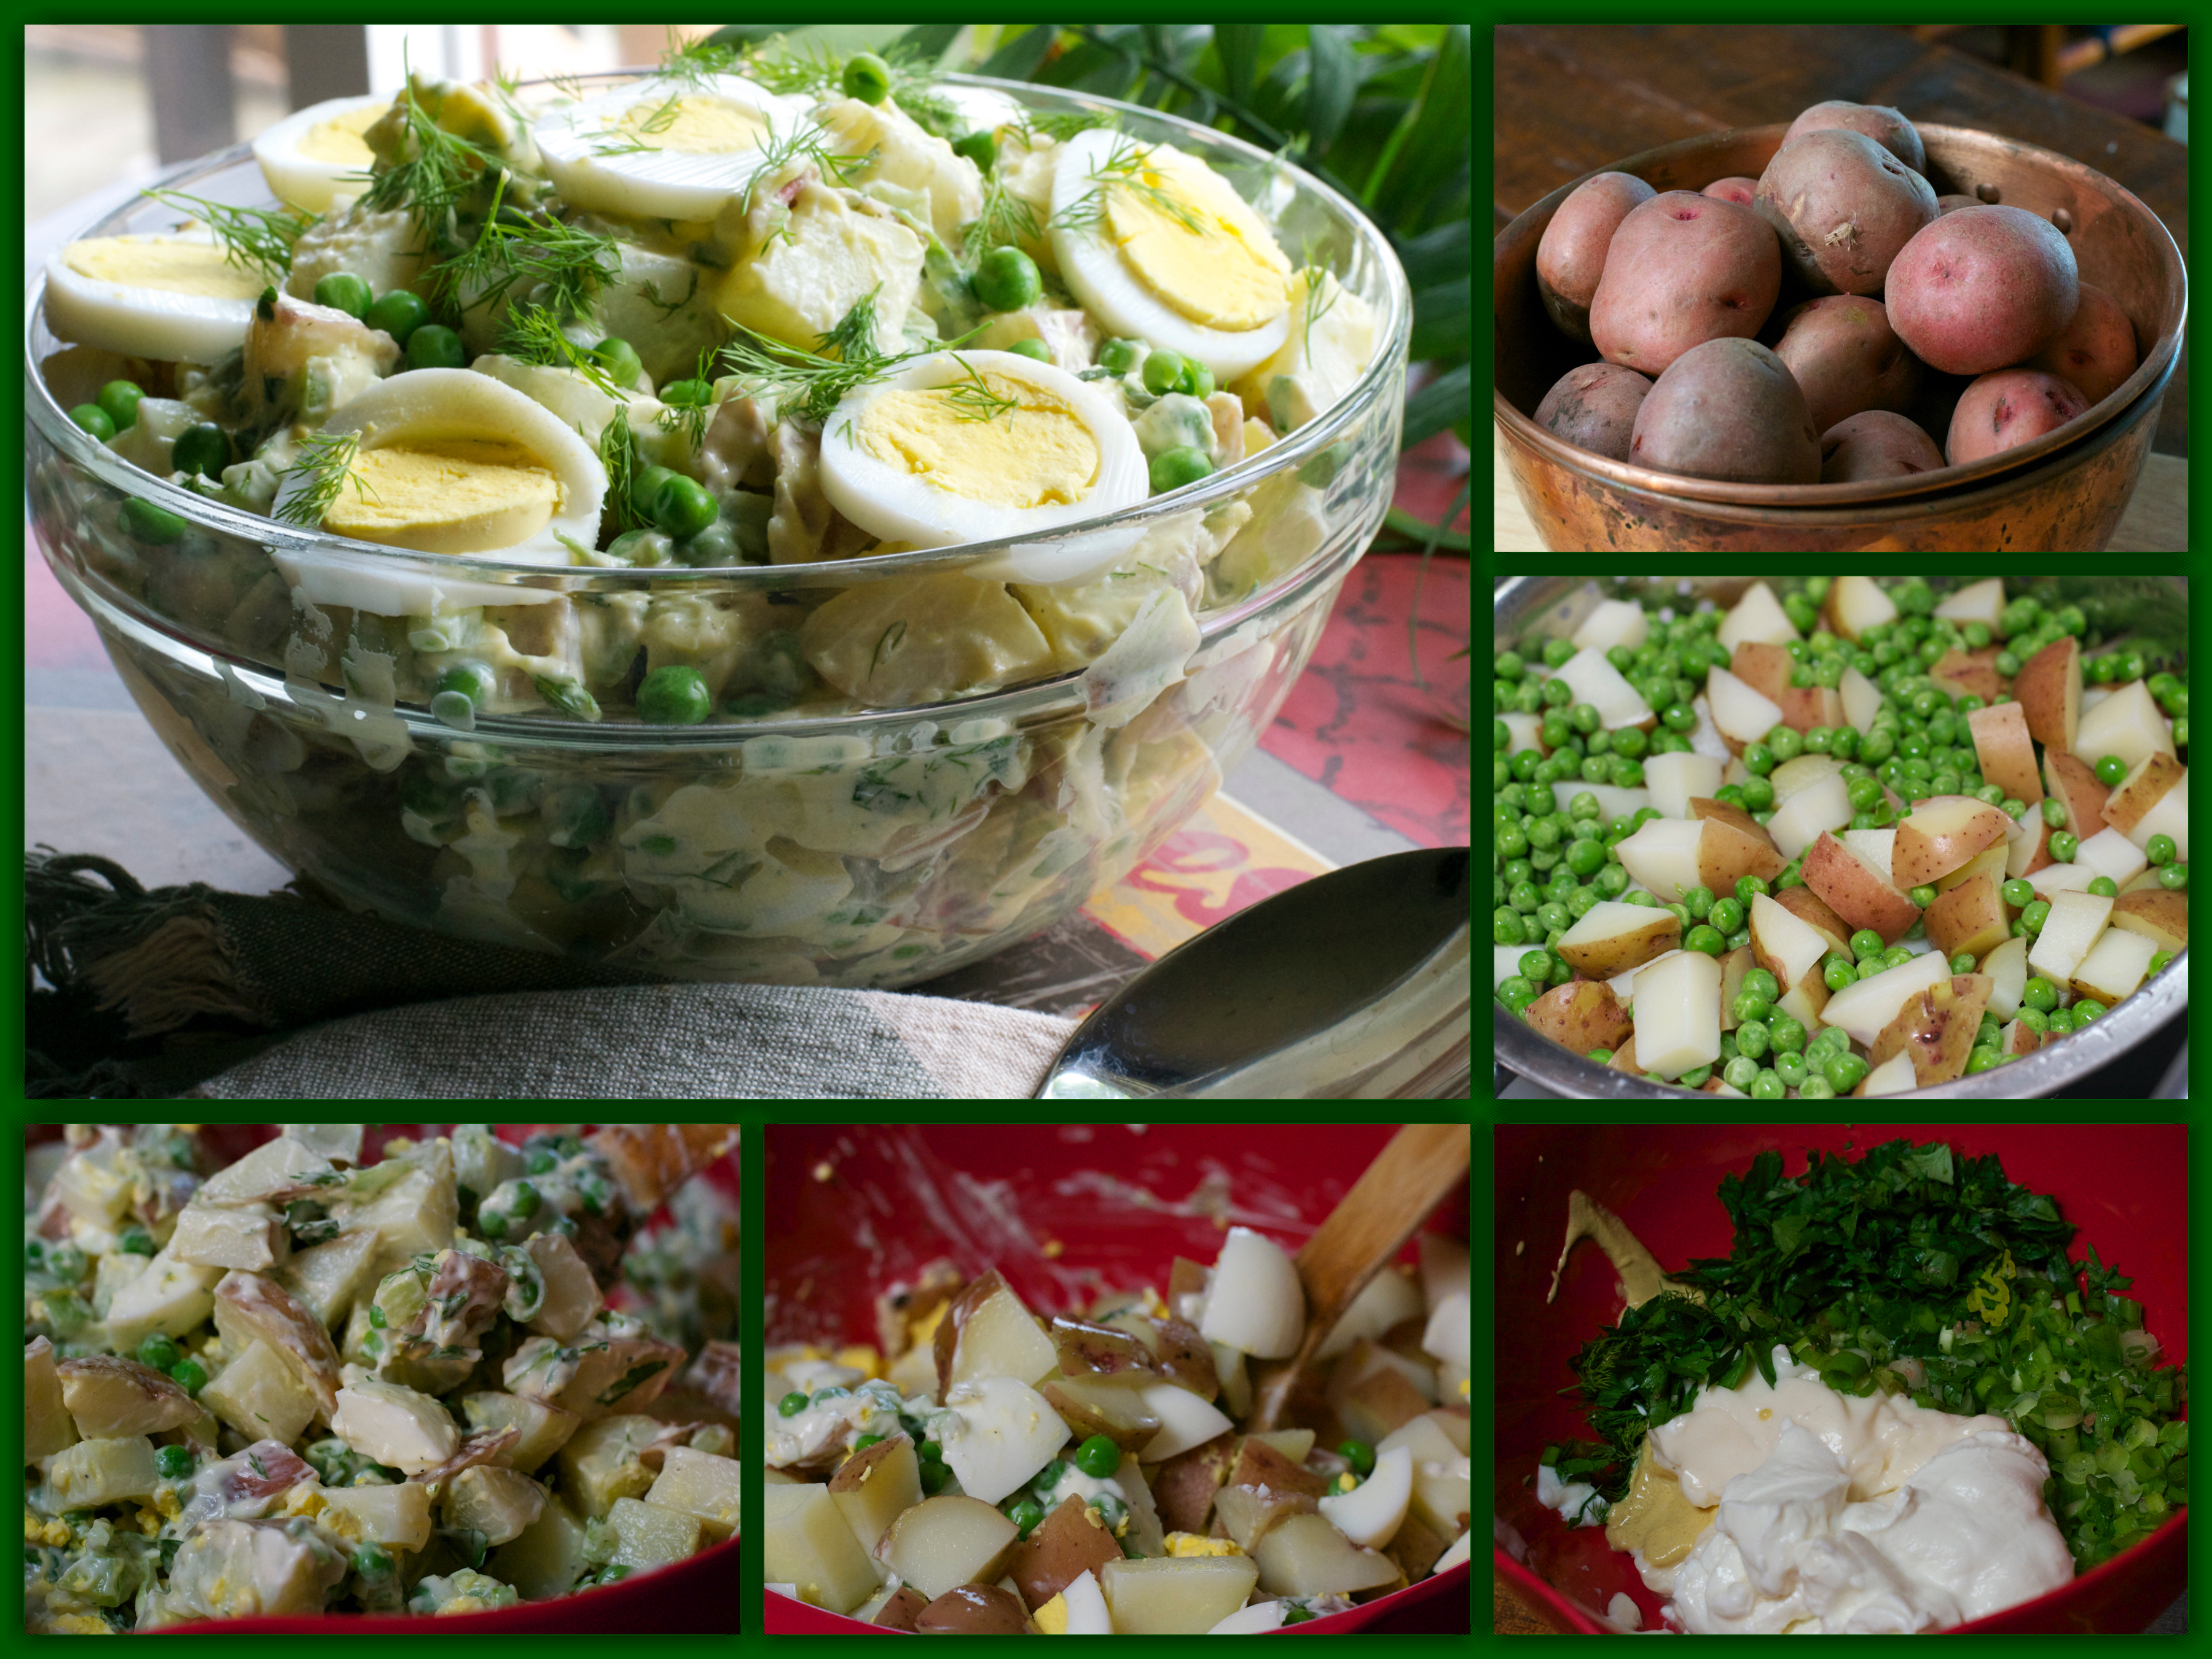 baby red potato salad ingredients 2 pounds unpeeled baby red potatoes ...